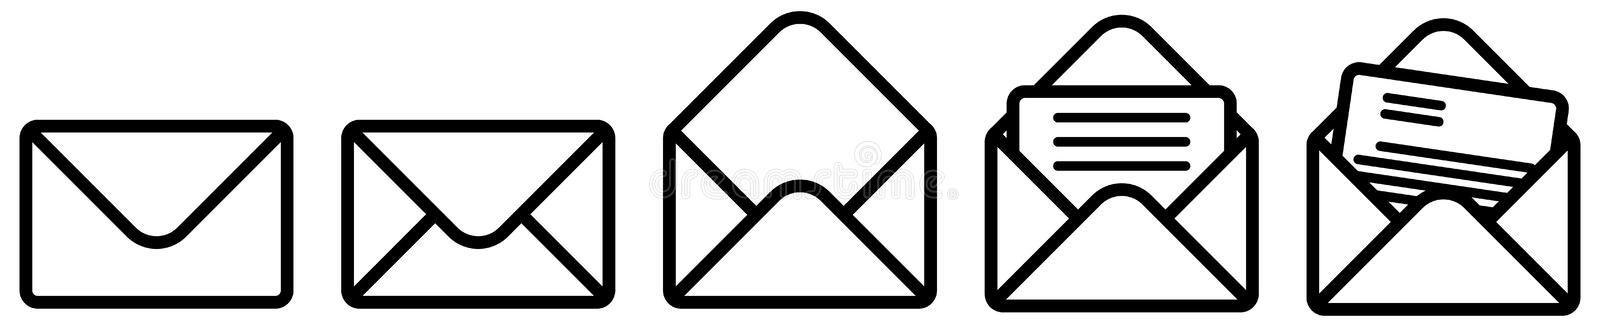 Simple envelope sign, closed, opened and with document version. Can be used as mail / email icon royalty free illustration